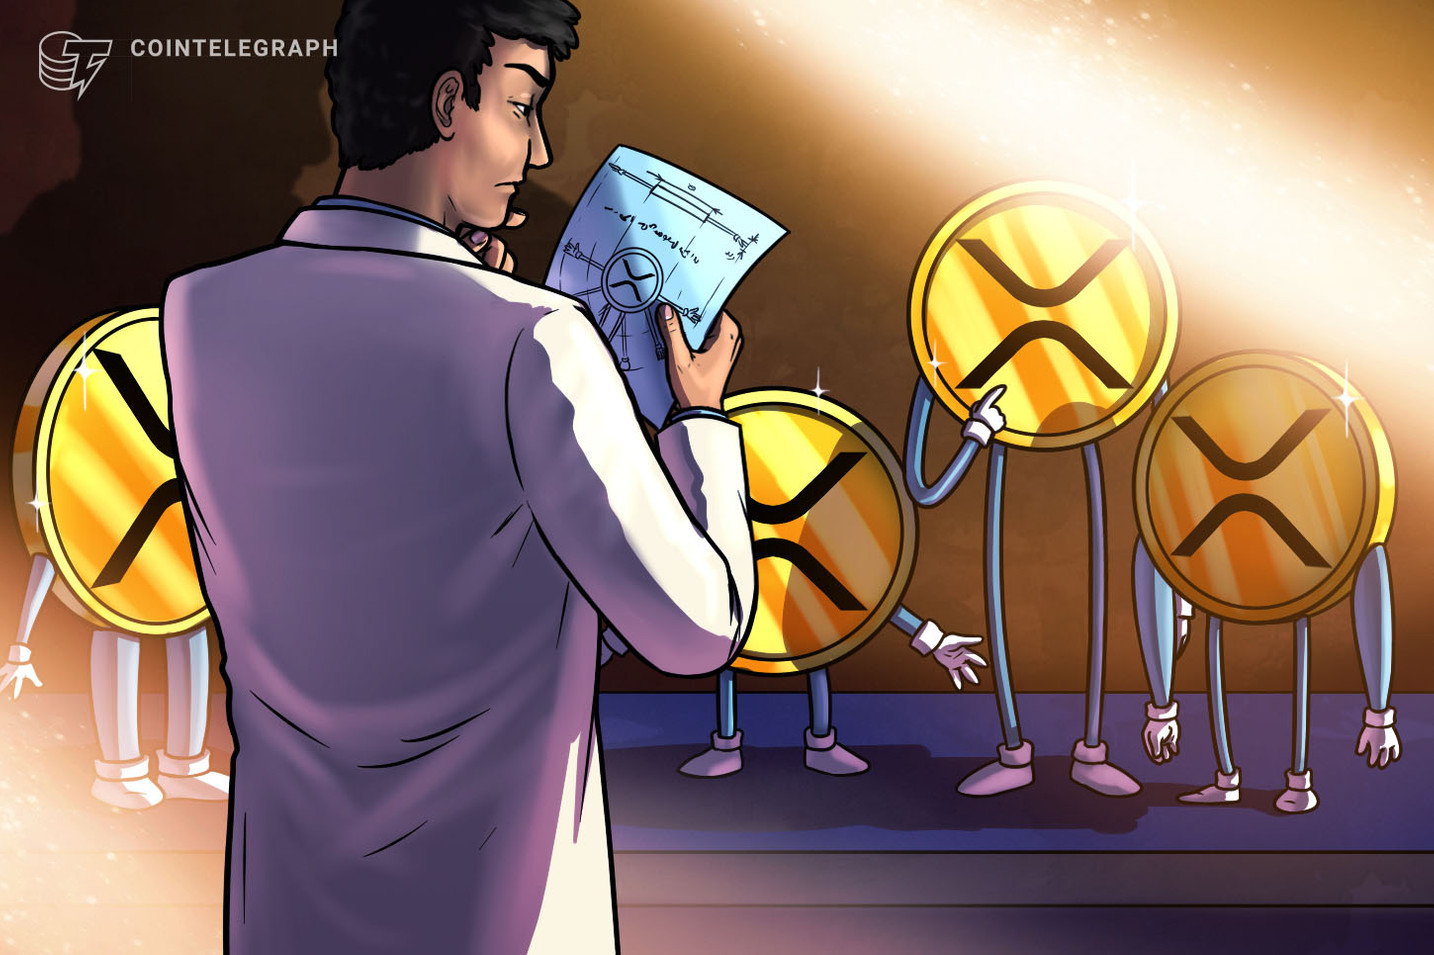 Ripple Escrow Reporting: Creative Accounting or Much Ado About Nothing?